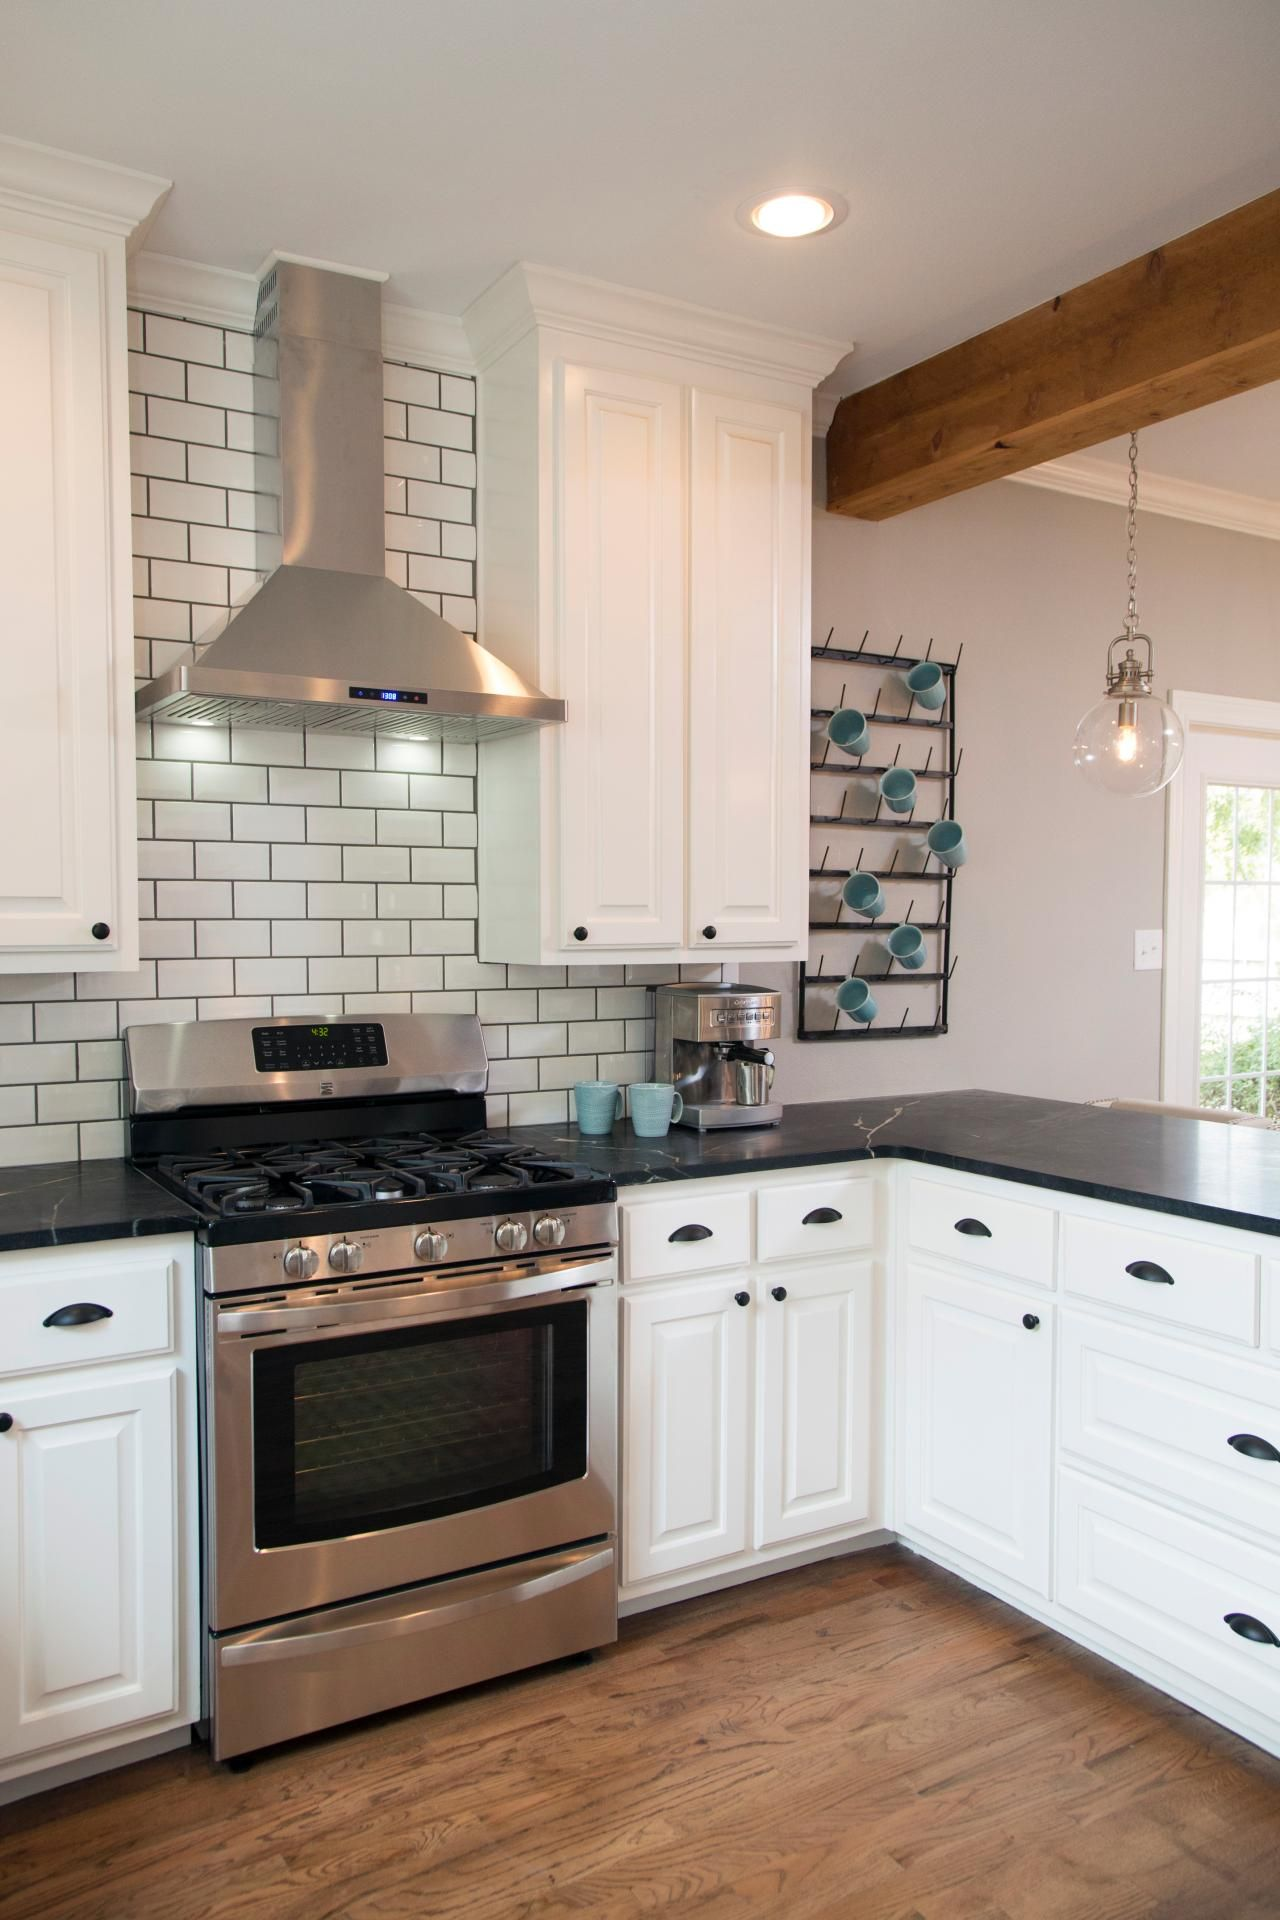 kitchen chimney without exhaust pipe cabinet refacing mississauga best 25 43 stainless steel range hood ideas on pinterest